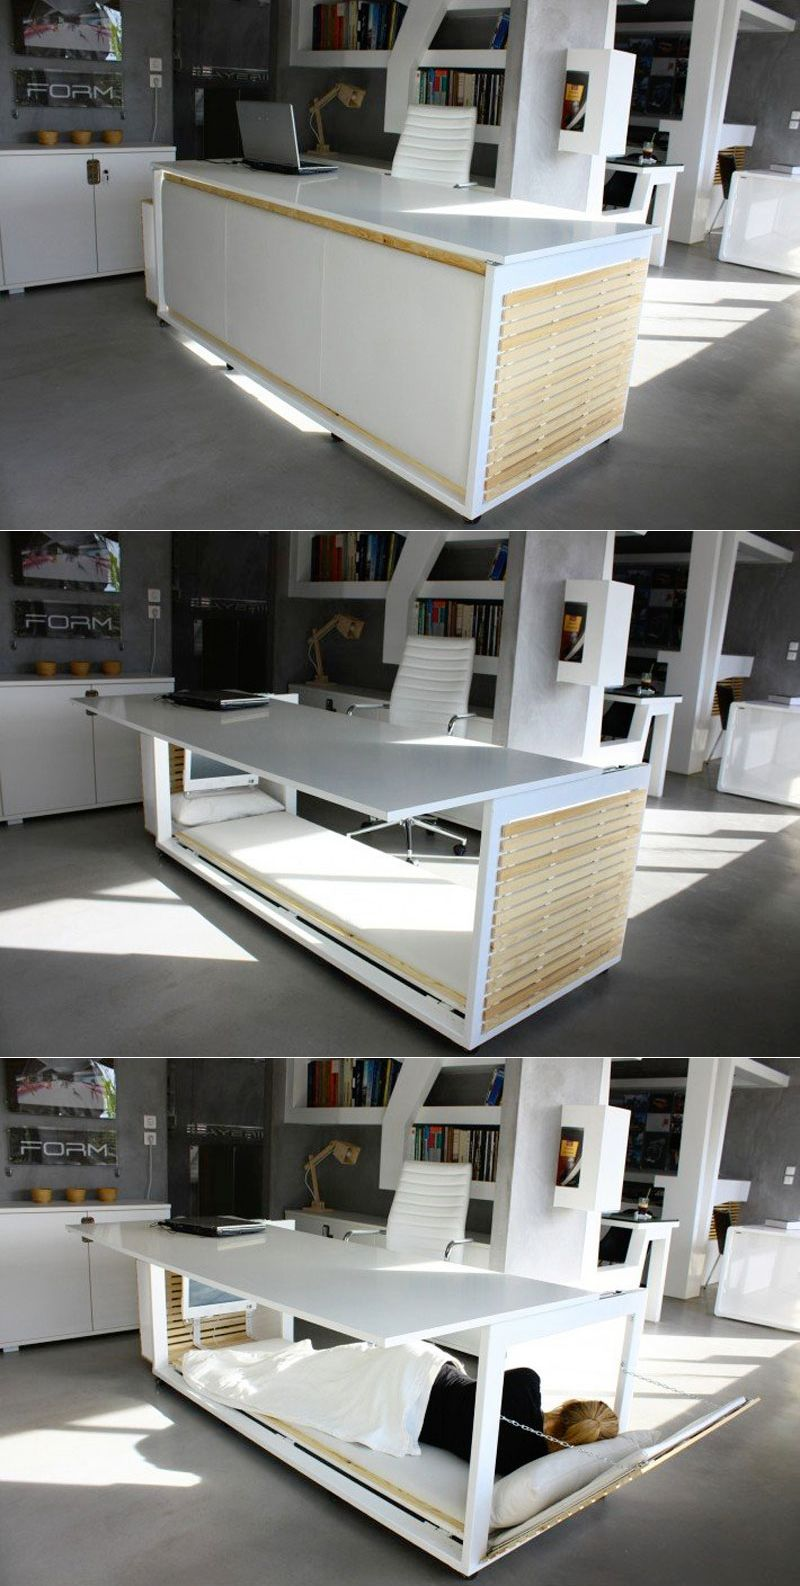 Furniture for a Best Home Office - Bonito Designs